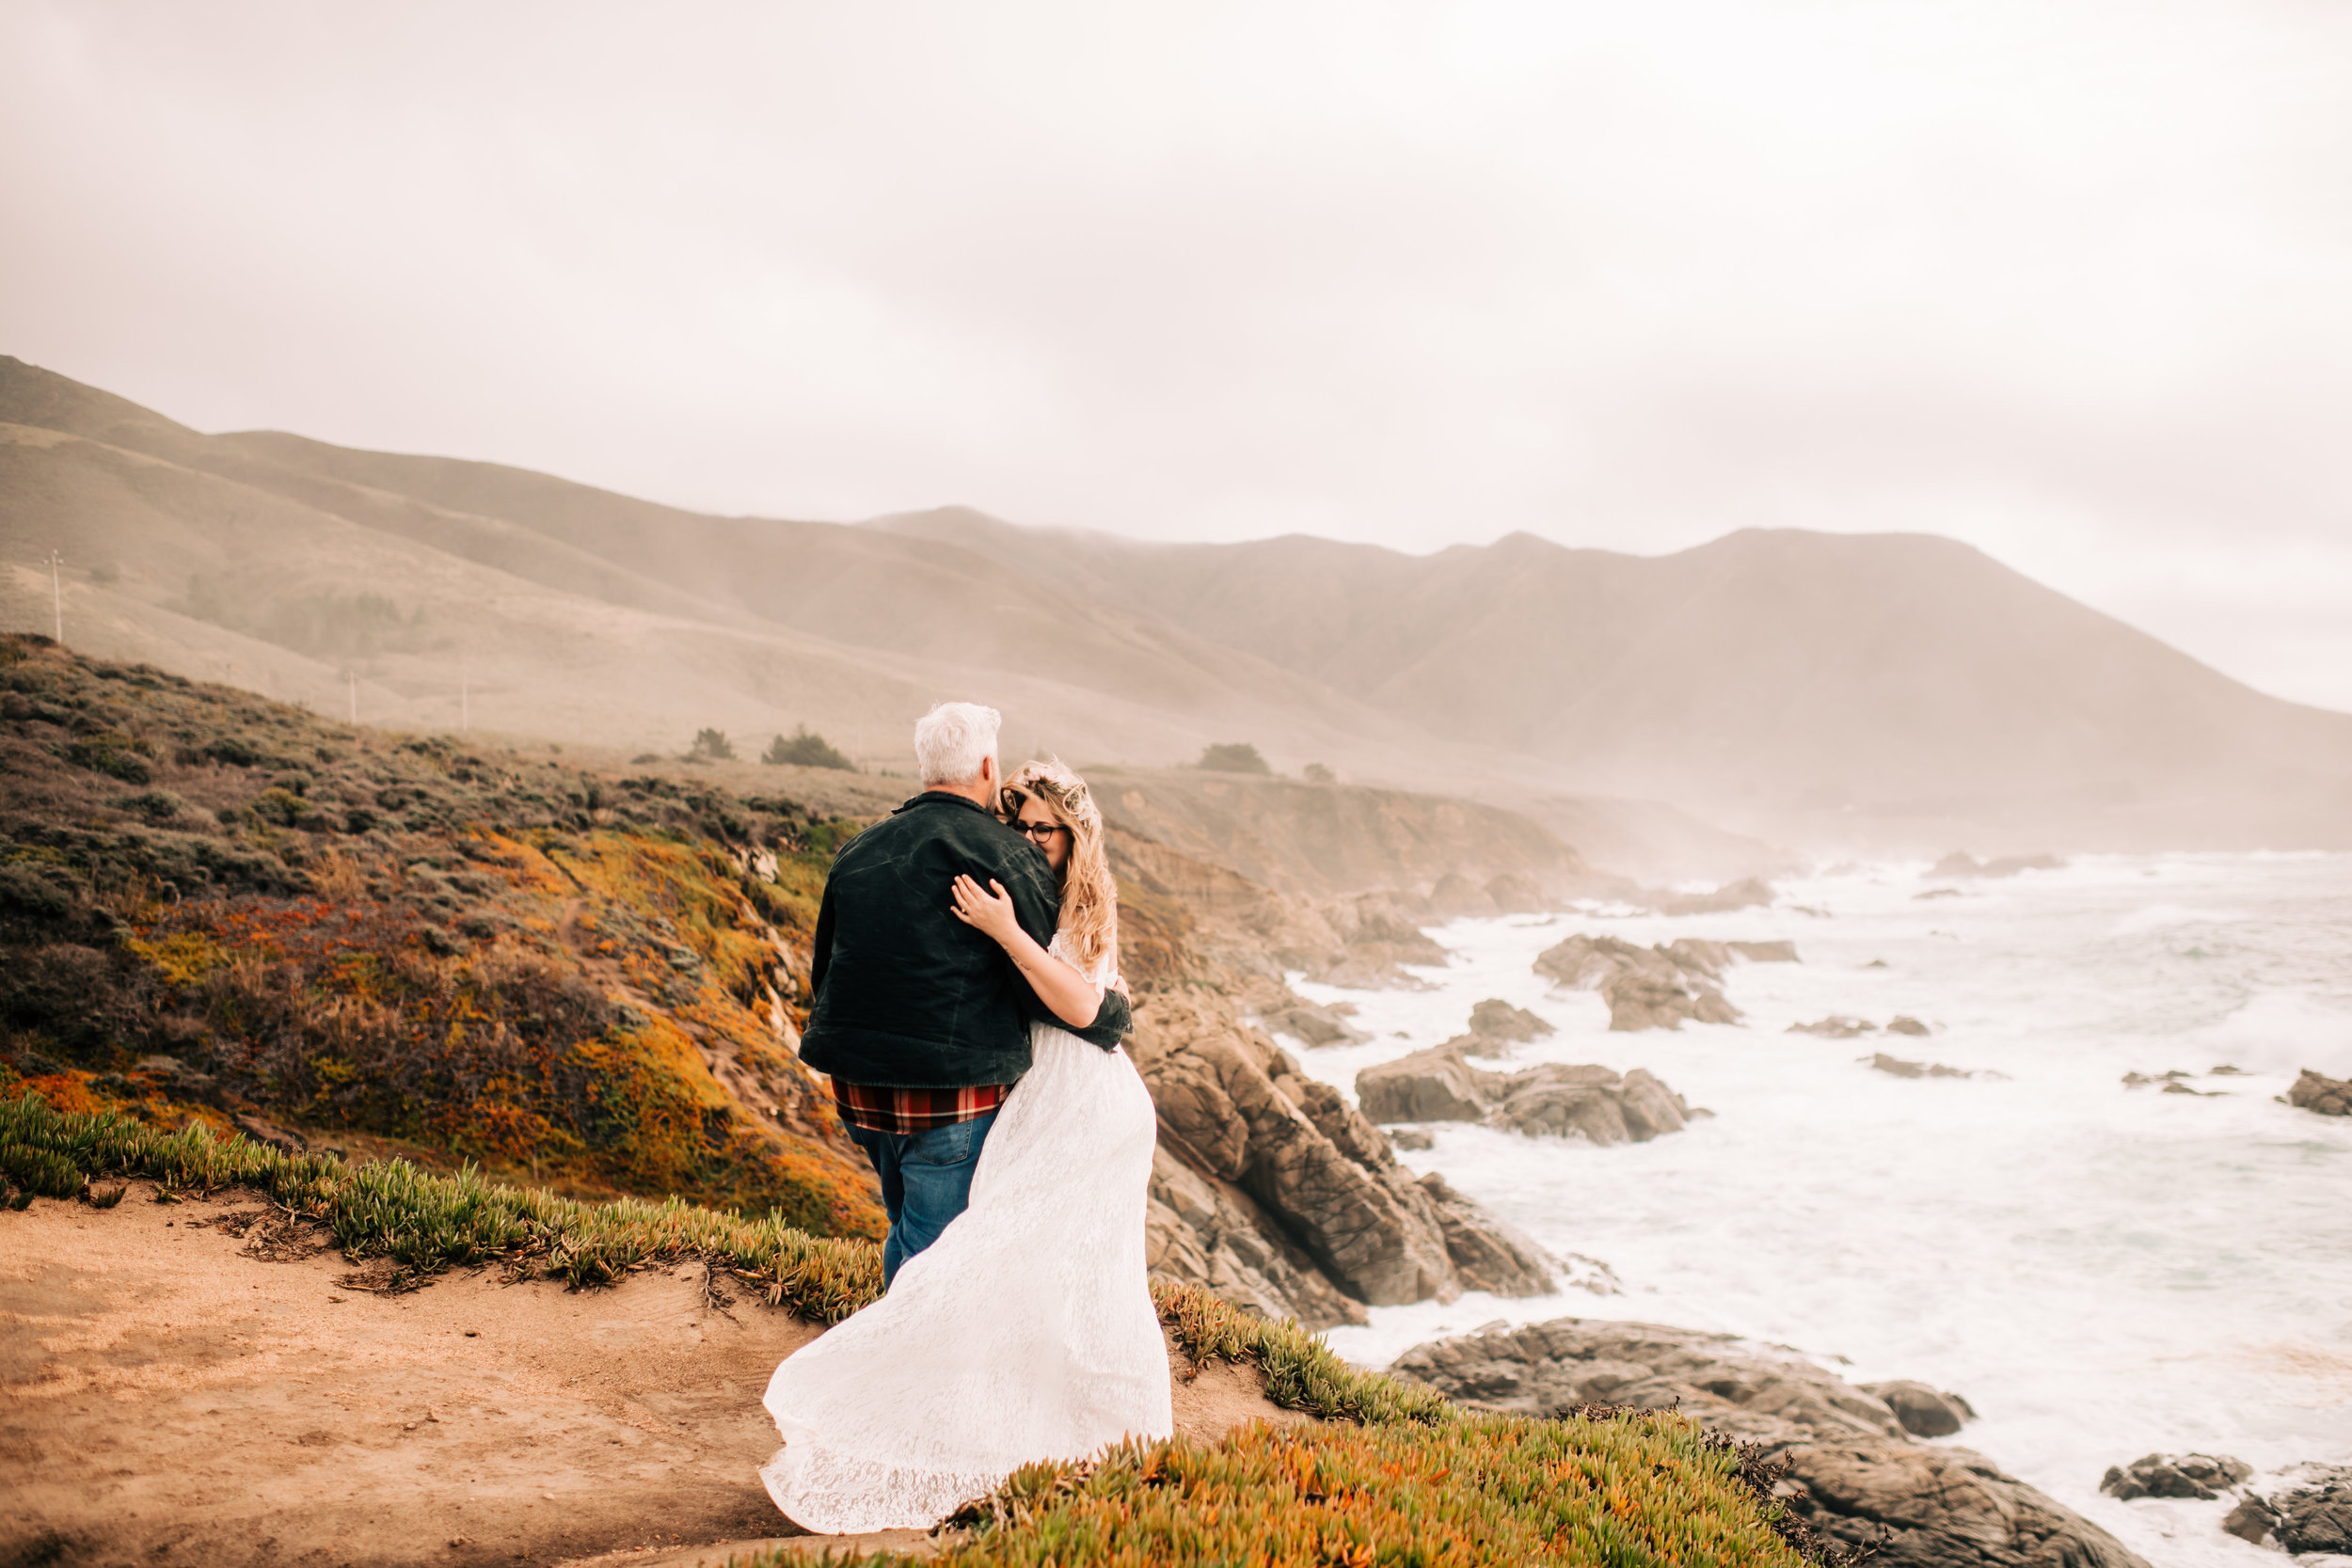 san francisco oakland bay area california sf yosemite big sur vow renewal nontraditional wedding photographer -130.jpg